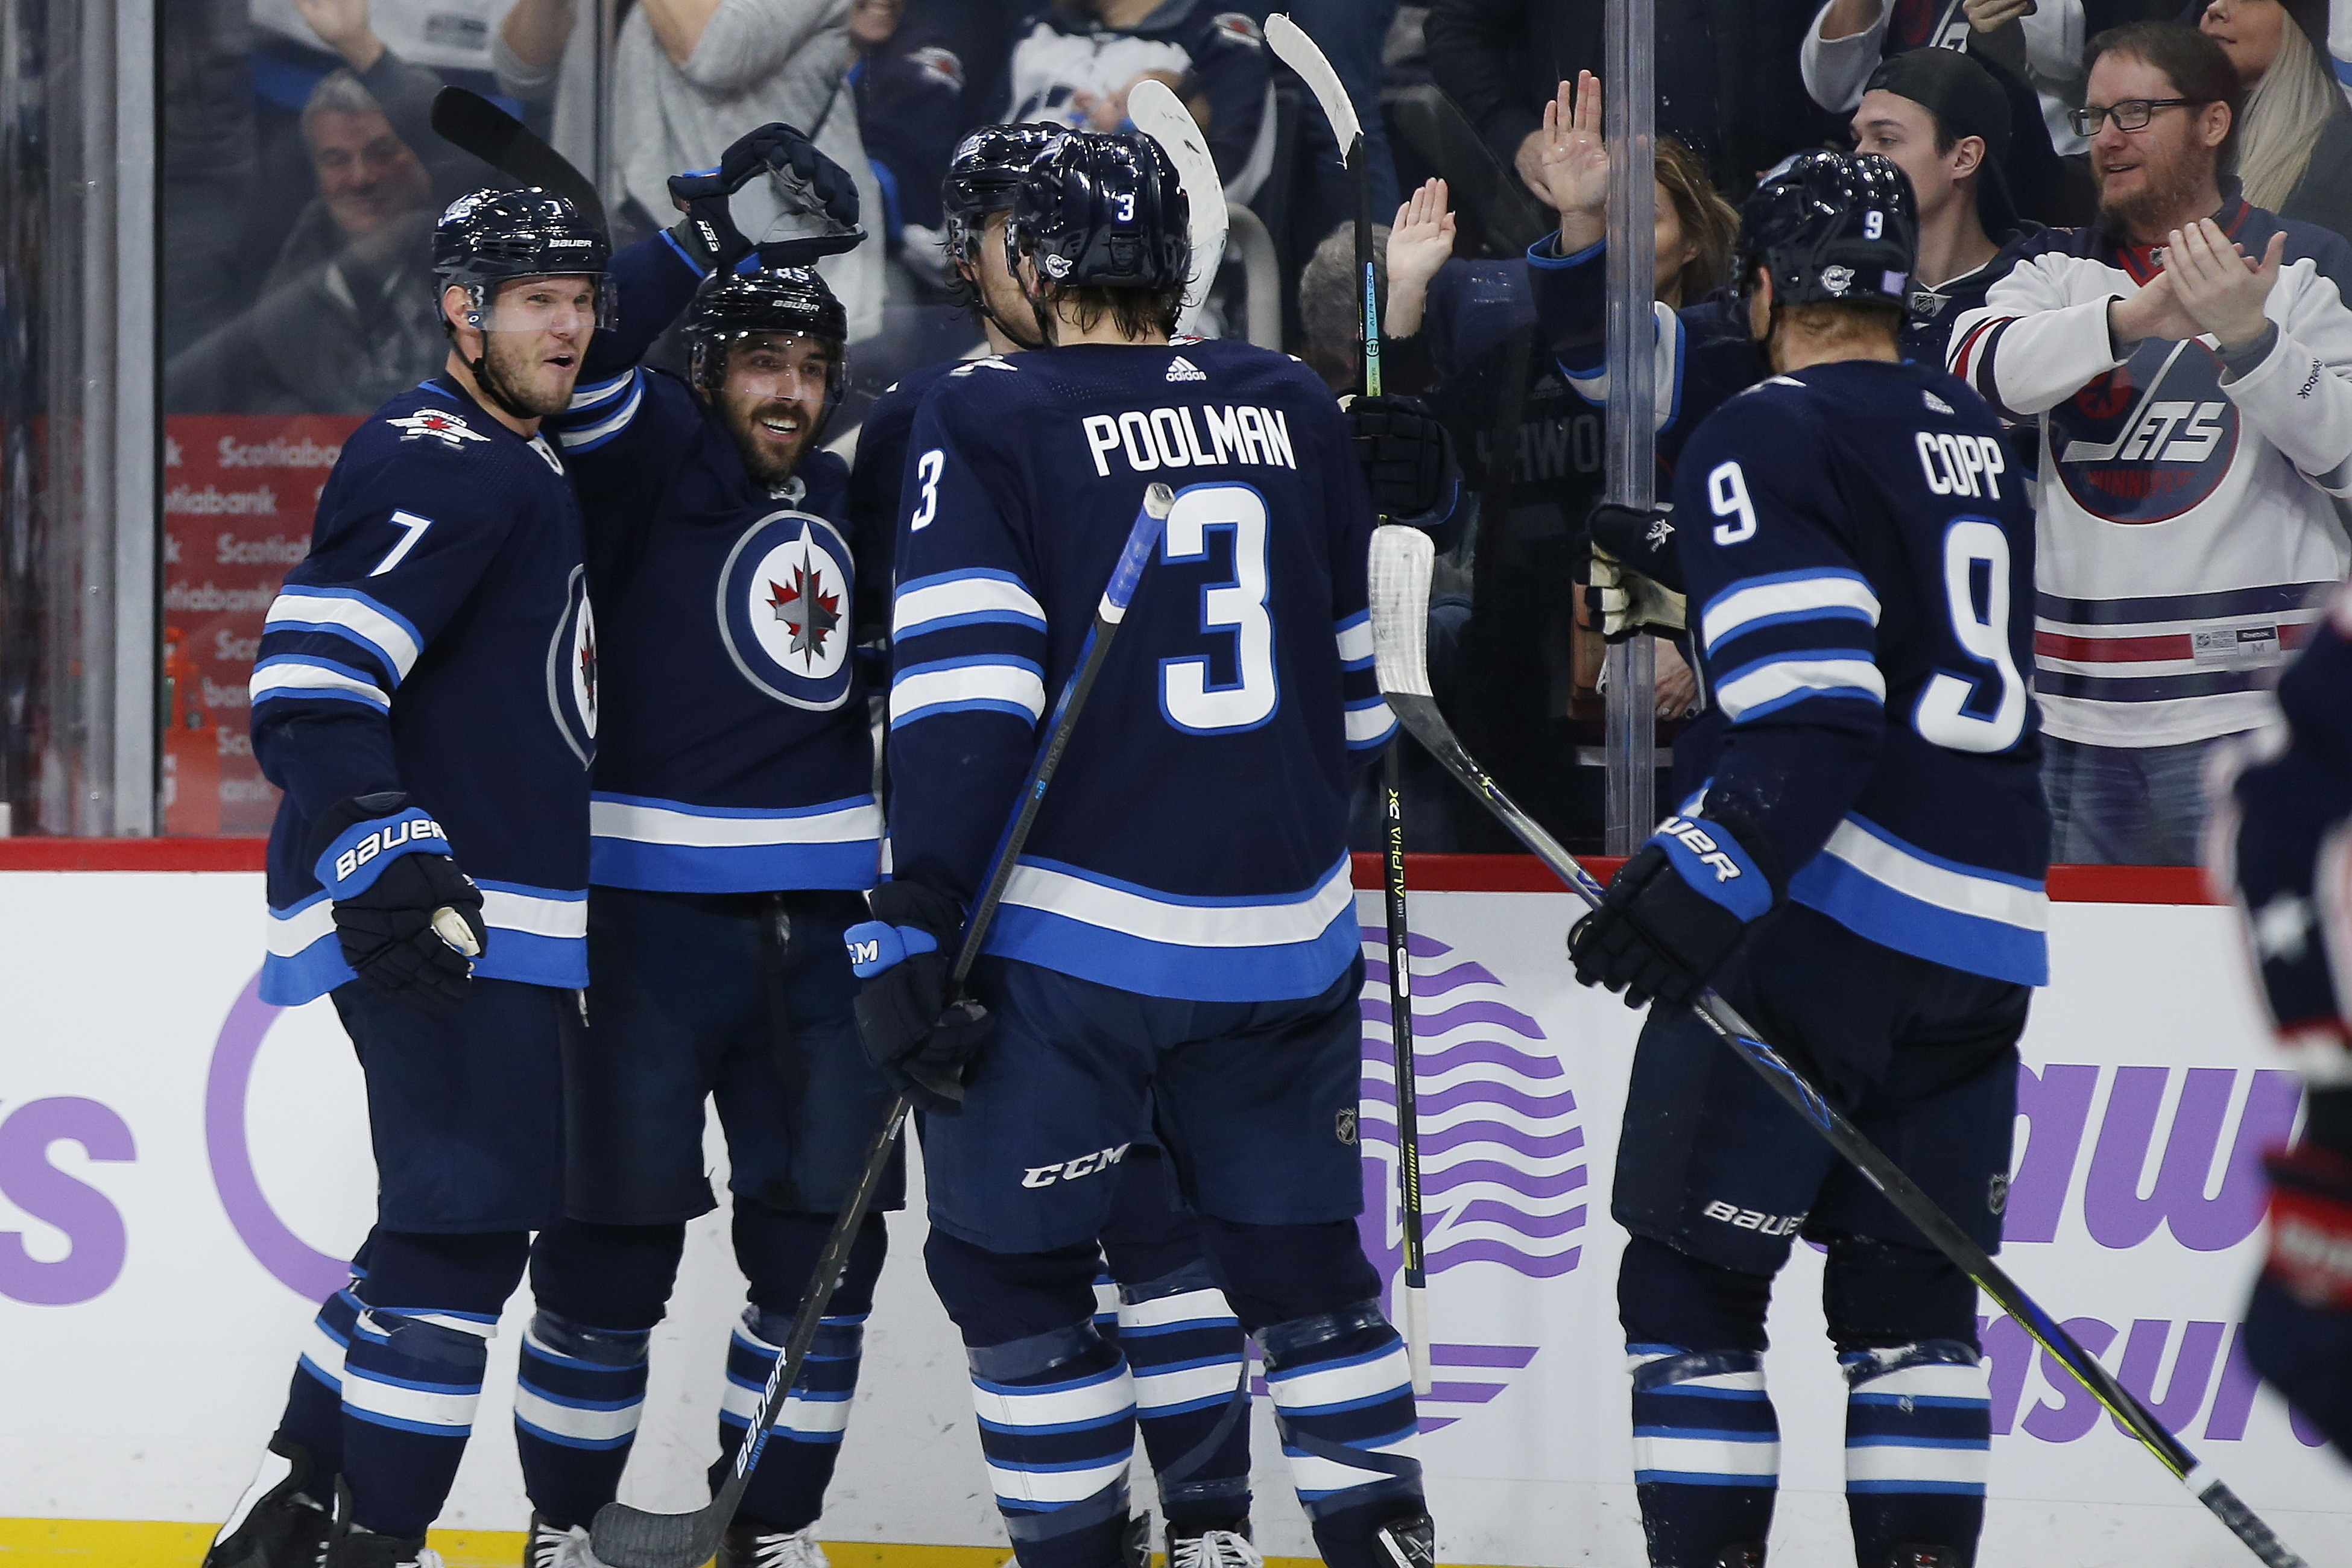 Copp's late goal lifts Jets to 4-3 win over Blue Jackets